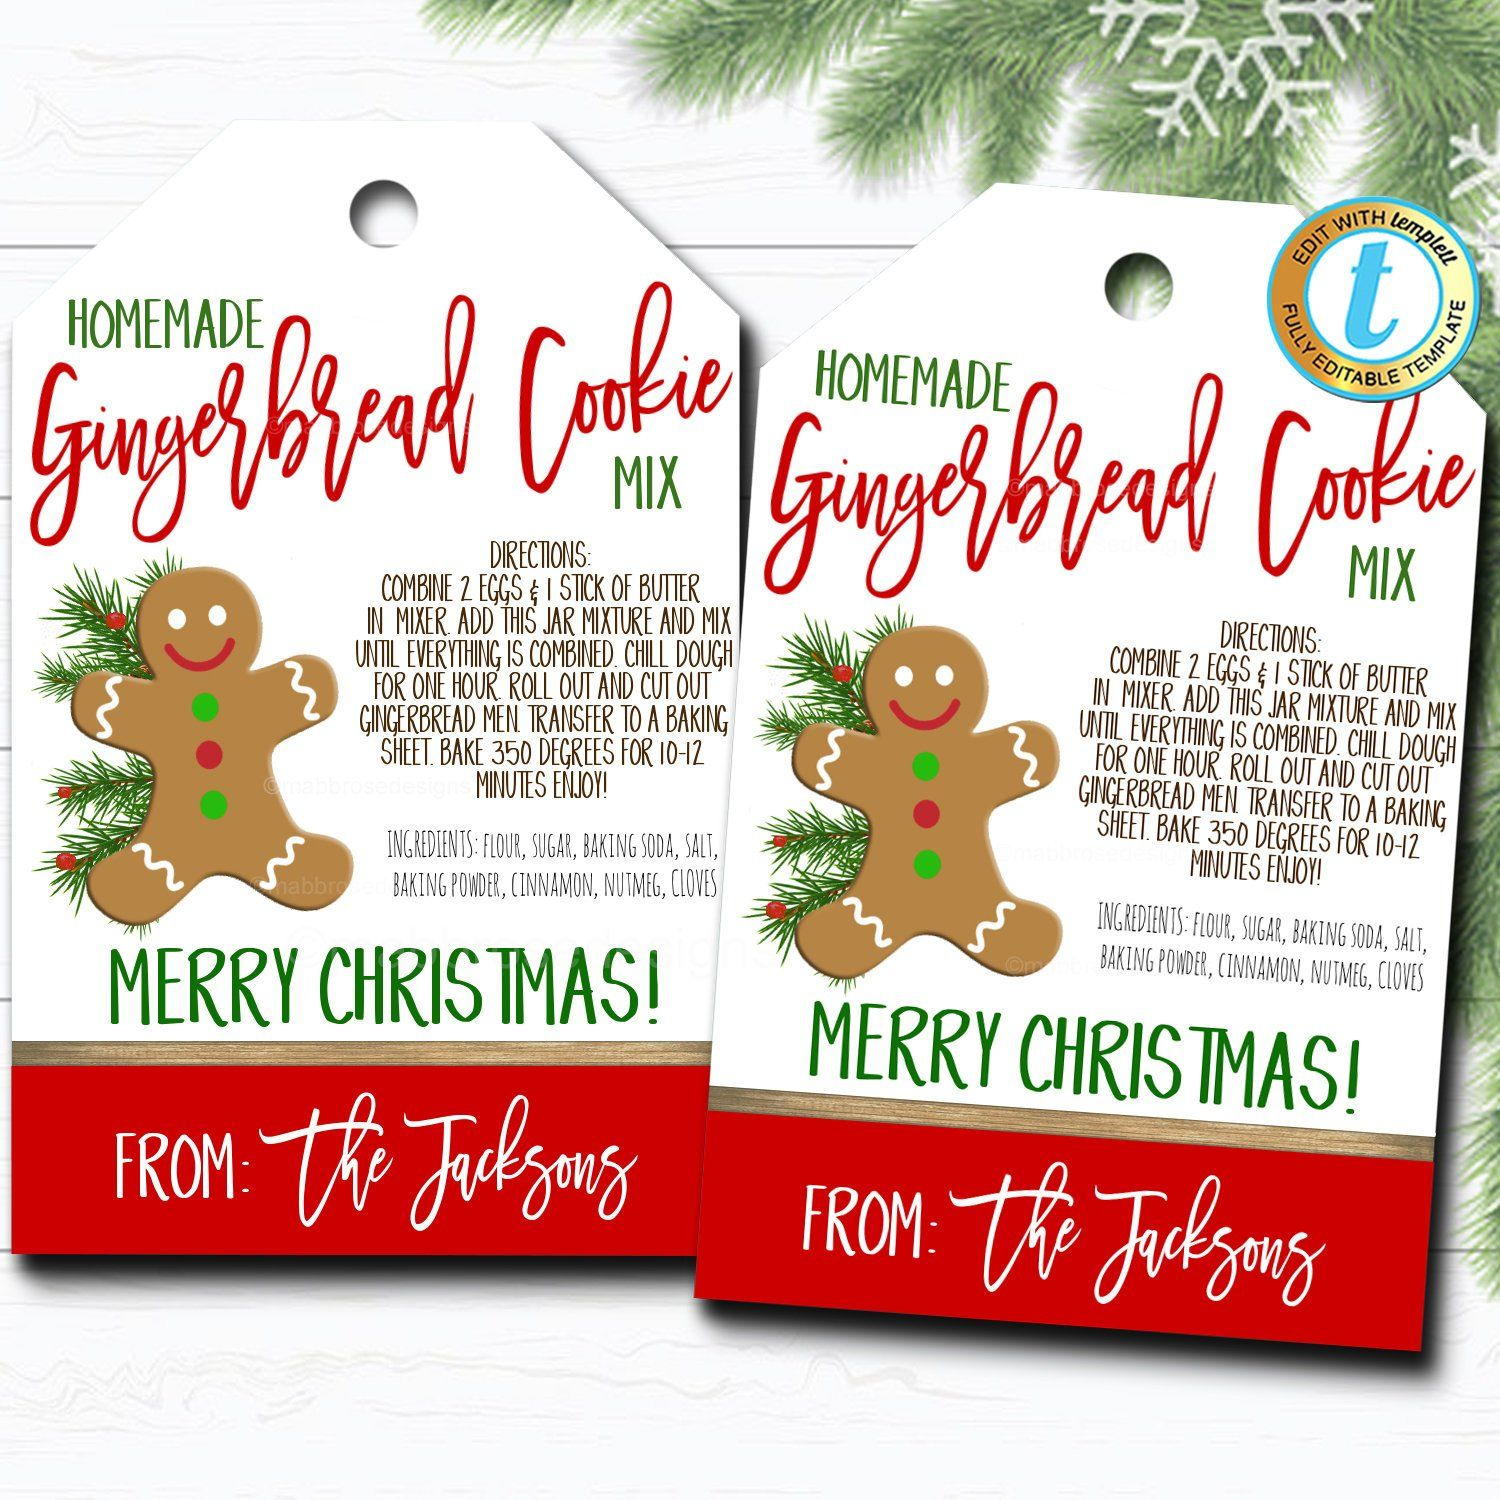 Christmas Gift Tags Cookie Jar Mix Gingerbread Recipe Tag Holiday Teacher Staff Secret Santa Gift Xmas Treat Label Diy Template Christmas Gift Tags Xmas Treats Holiday Gift Tags